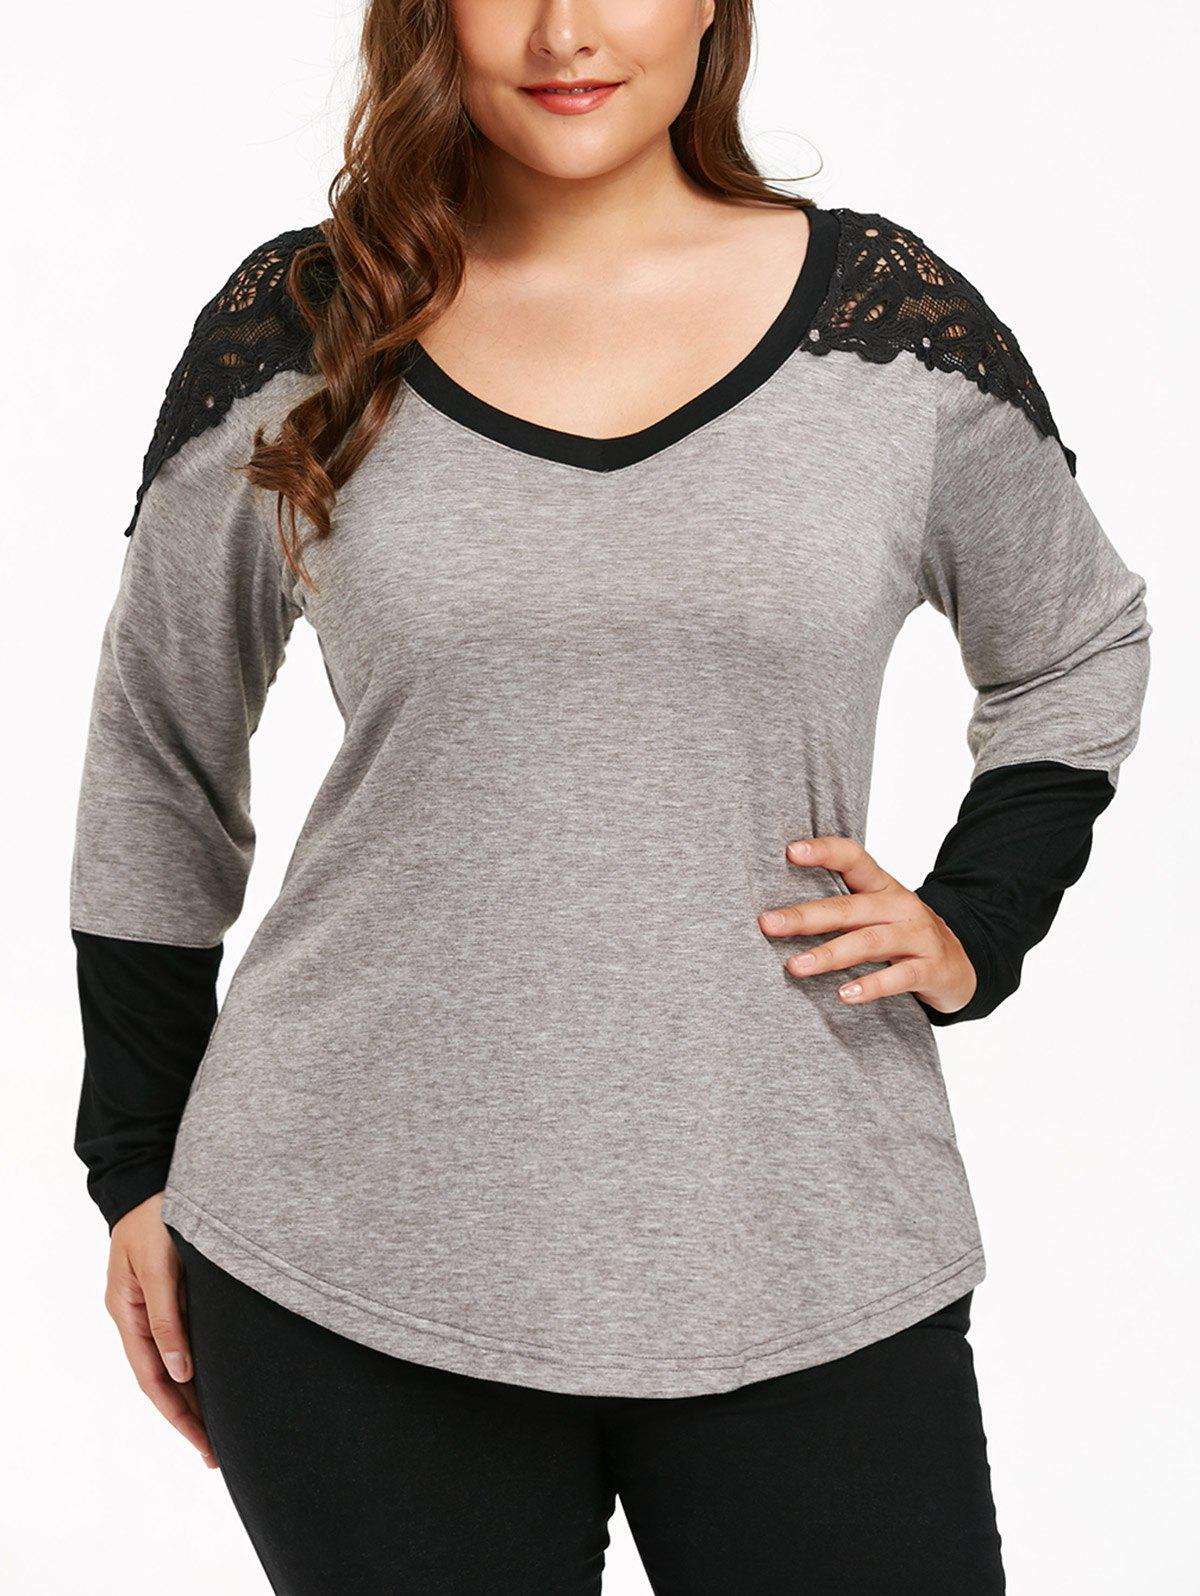 Plus Size Long Sleeve Lace Panel T-shirtWOMEN<br><br>Size: 2XL; Color: GRAY; Material: Polyester,Spandex; Shirt Length: Regular; Sleeve Length: Full; Collar: V-Neck; Style: Casual; Season: Fall,Spring,Winter; Embellishment: Lace,Panel; Pattern Type: Solid; Elasticity: Elastic; Weight: 0.2900kg; Package Contents: 1 x T-shirt;